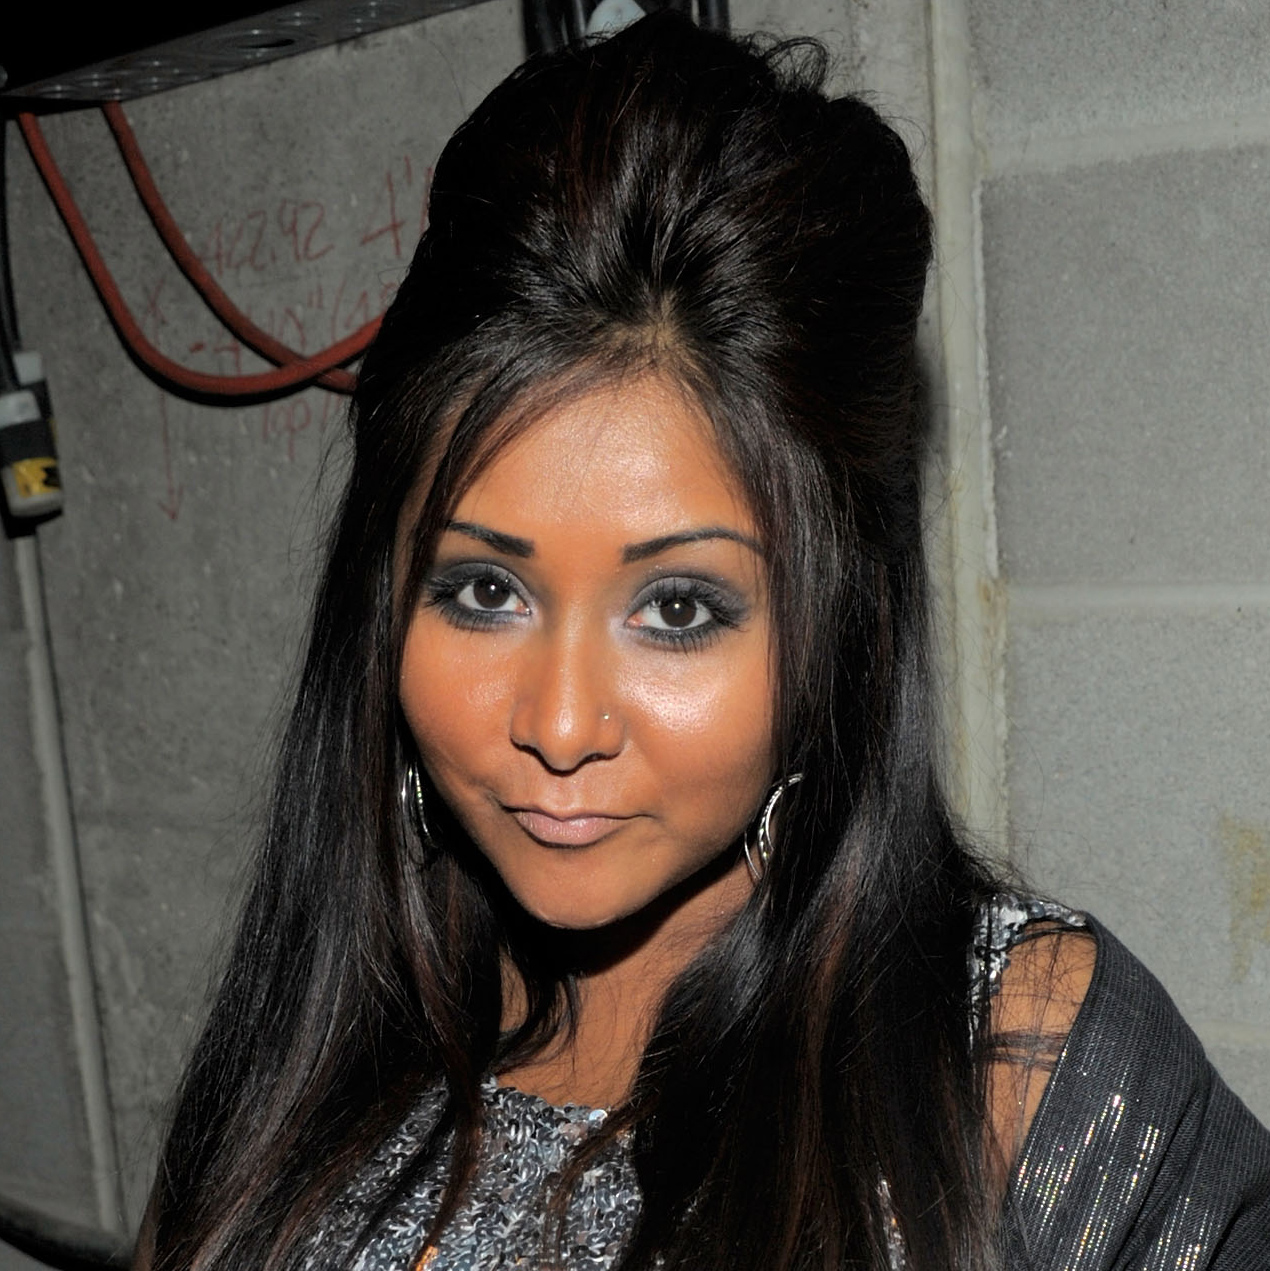 Pictures Snooki nude photos 2019